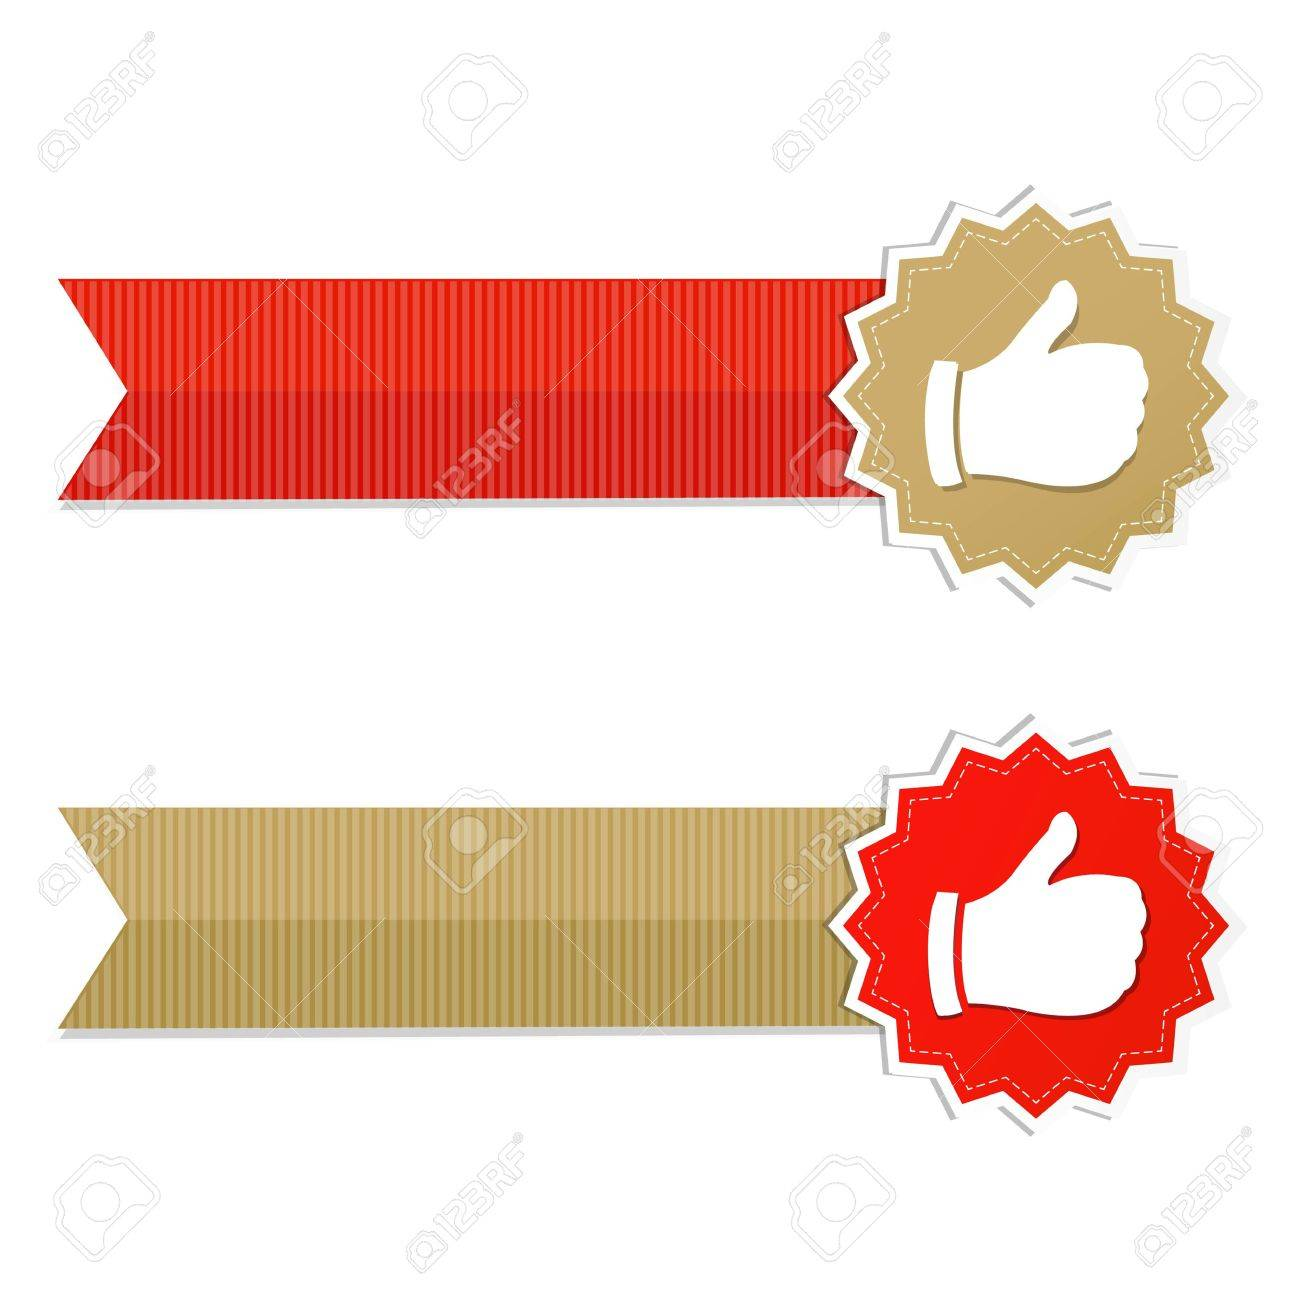 Best Choice Labels And Ribbons,  Illustration Stock Vector - 19580707